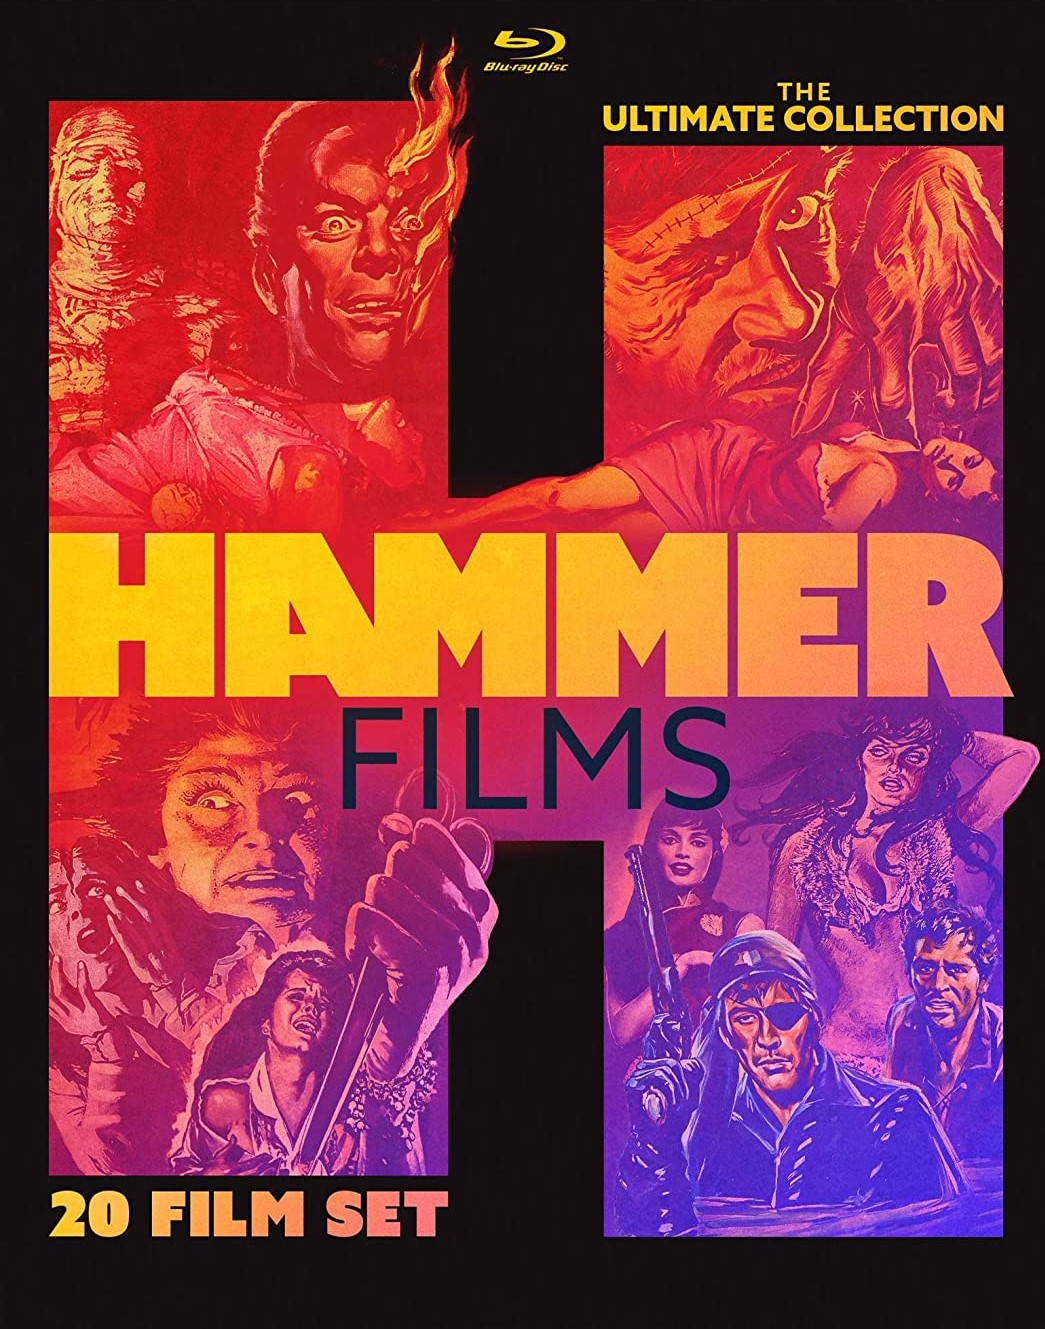 [Blu-ray/DVD Review] HAMMER FILMS: THE ULTIMATE COLLECTION